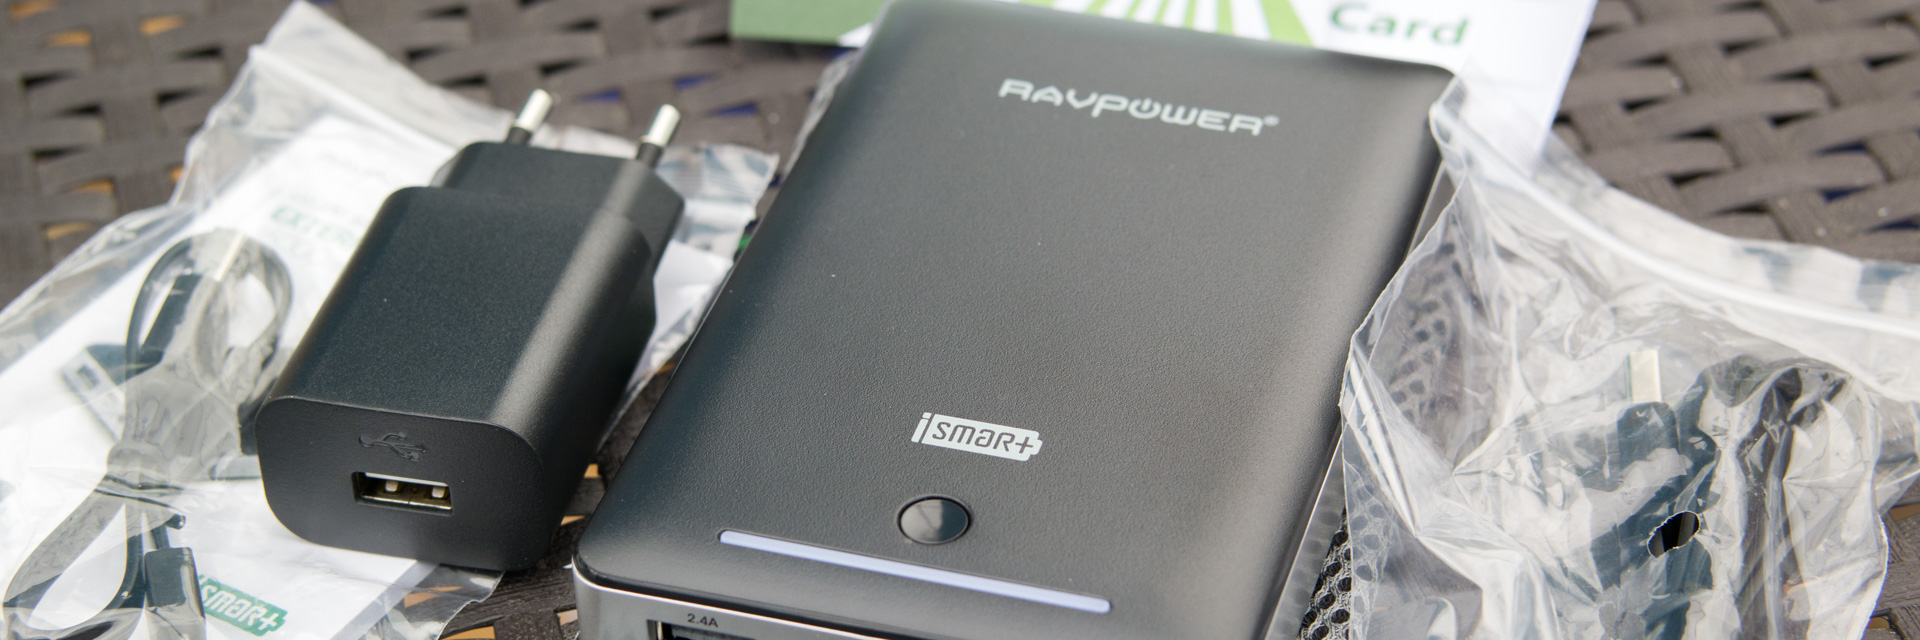 Review RAVPower RP-PB19 16000mAh Power Bank